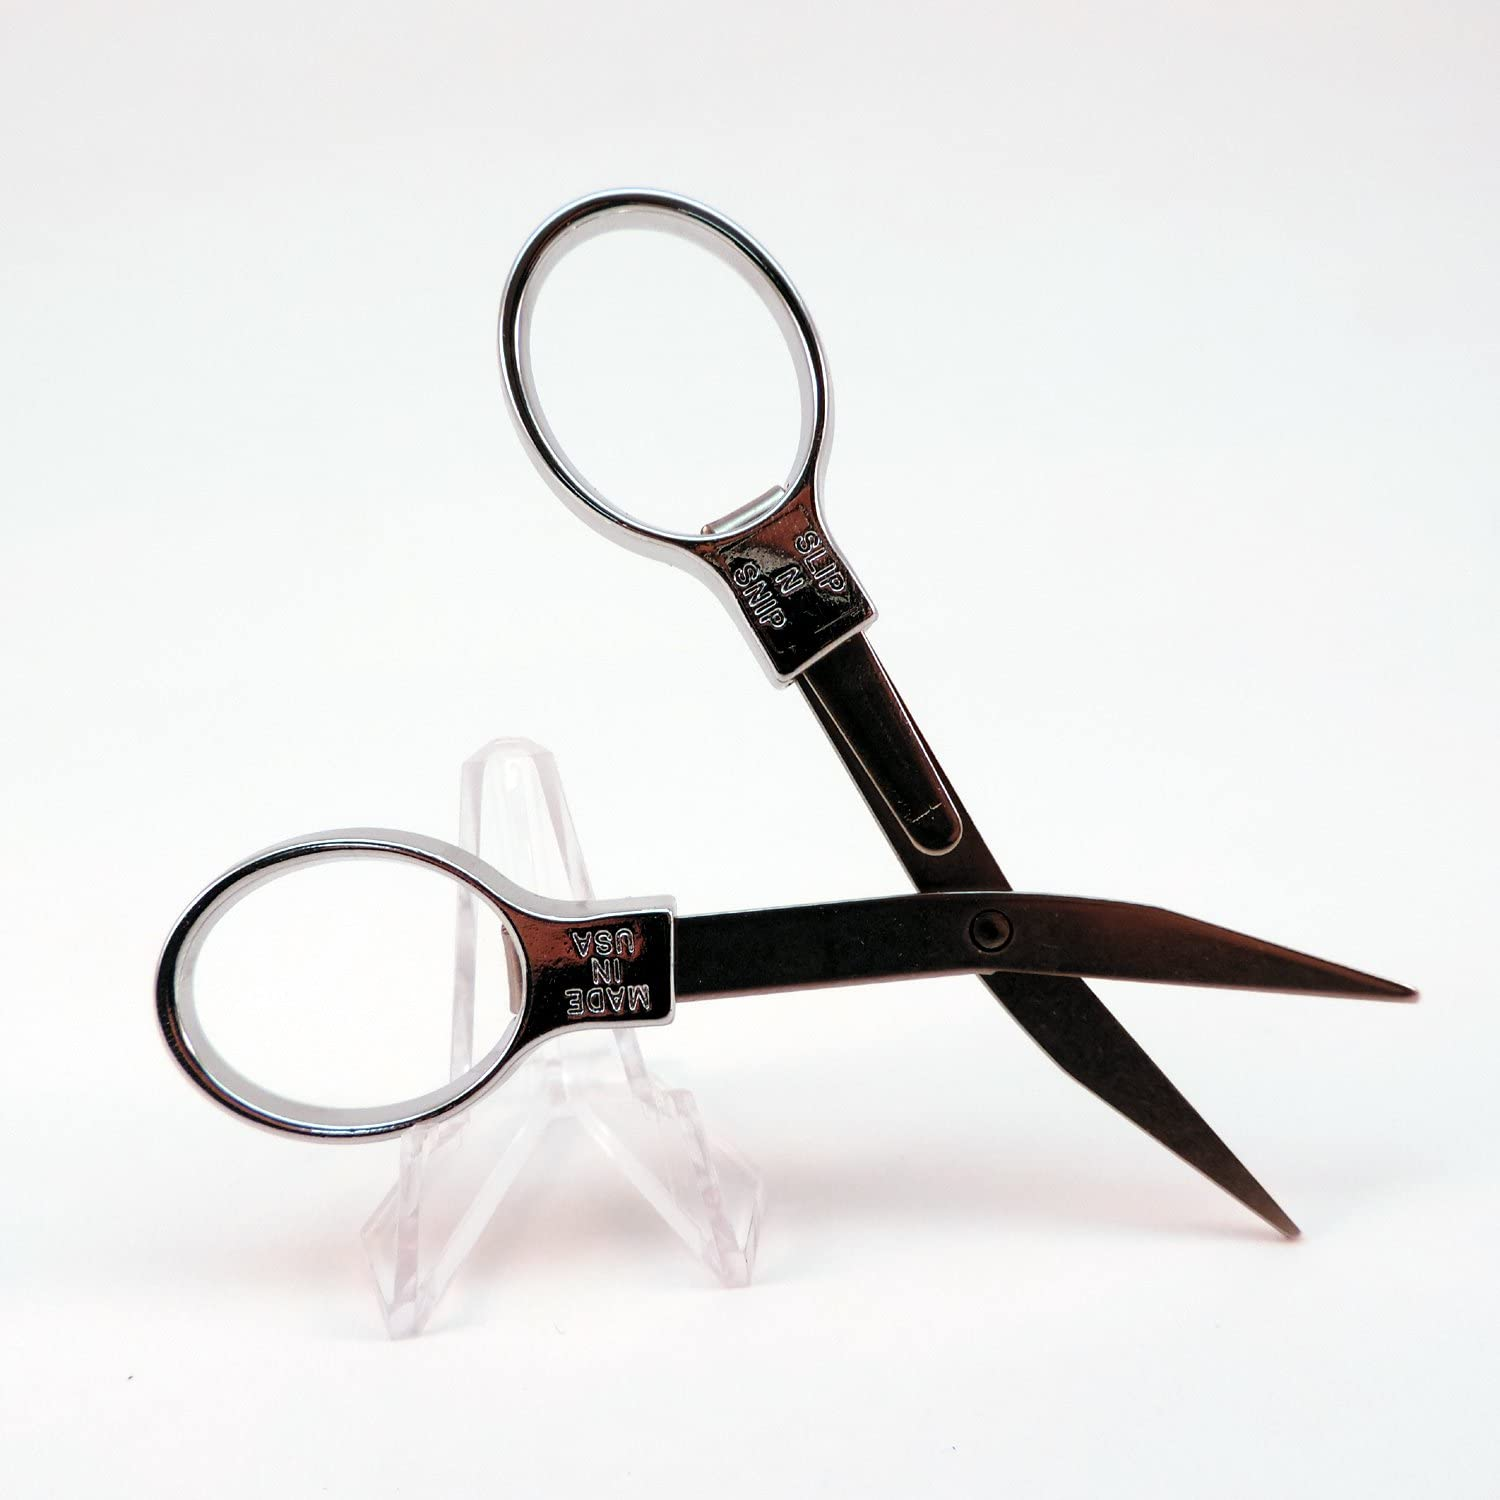 Slip-N-Snip The Original Folding Mesa Mall Safety 13 Scissors IN 2021new shipping free shipping 1